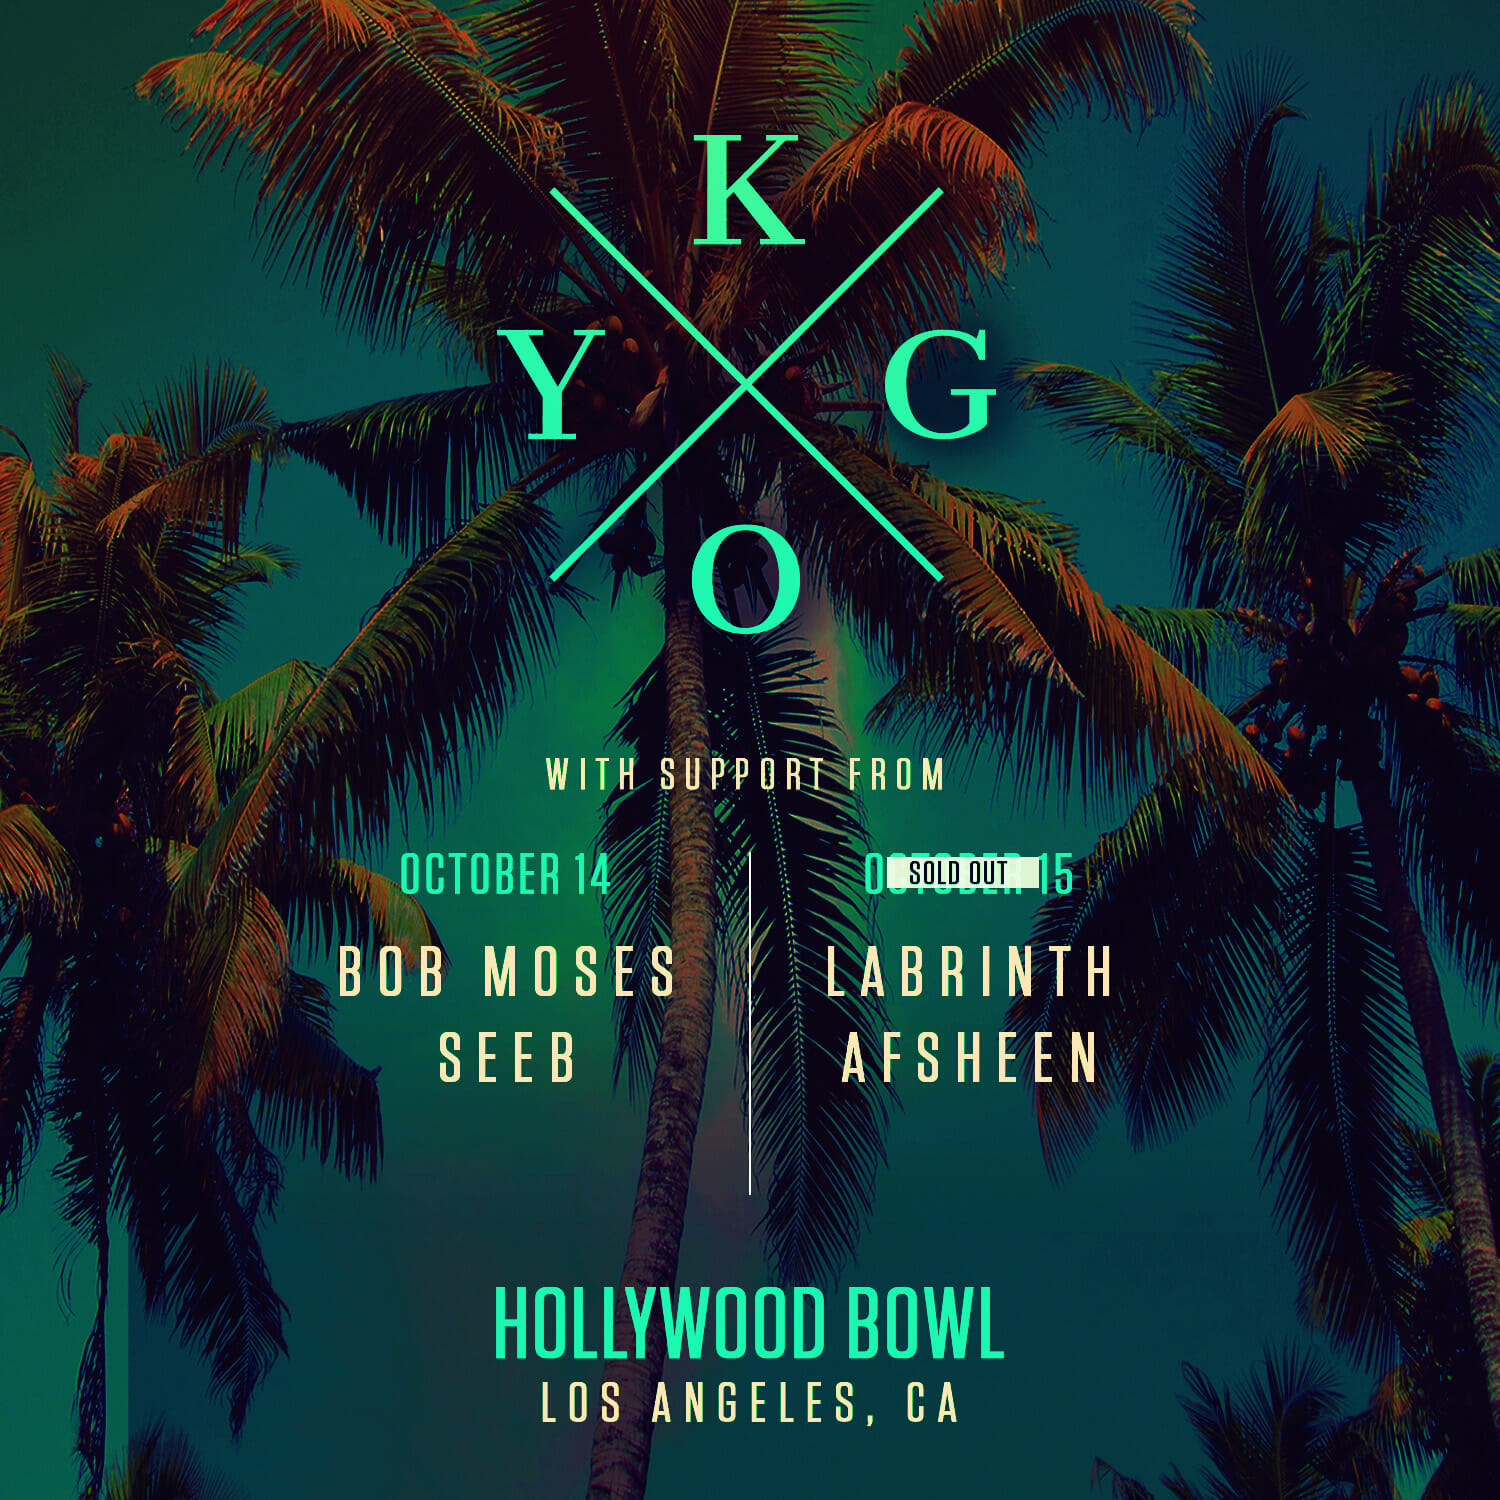 Win tickets to see Kygo at Hollywood Bowl on October 14thKygo HollywoodBowl1e Dates Sq